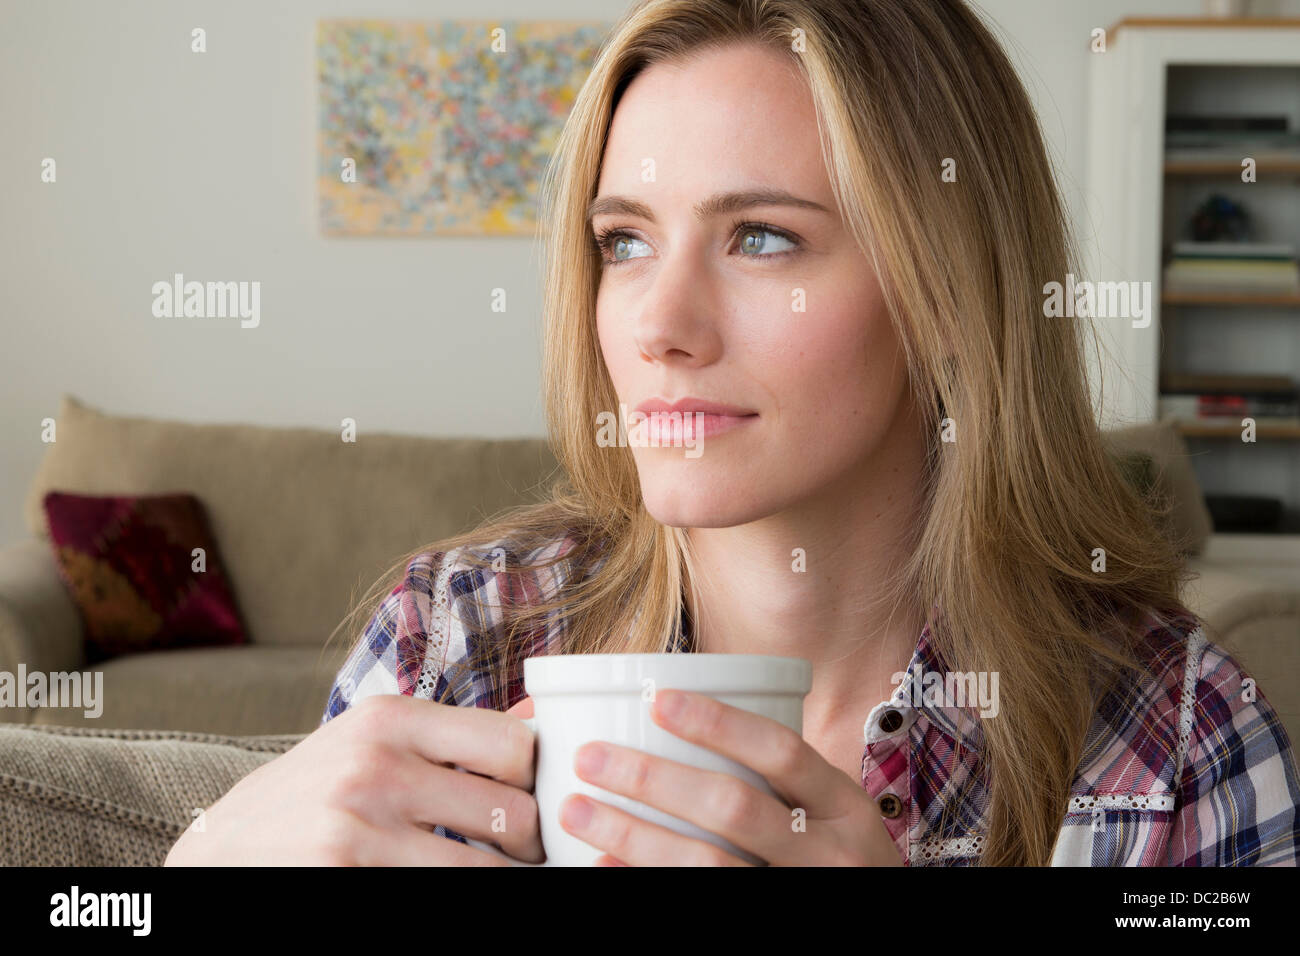 Woman with cup day dreaming - Stock Image